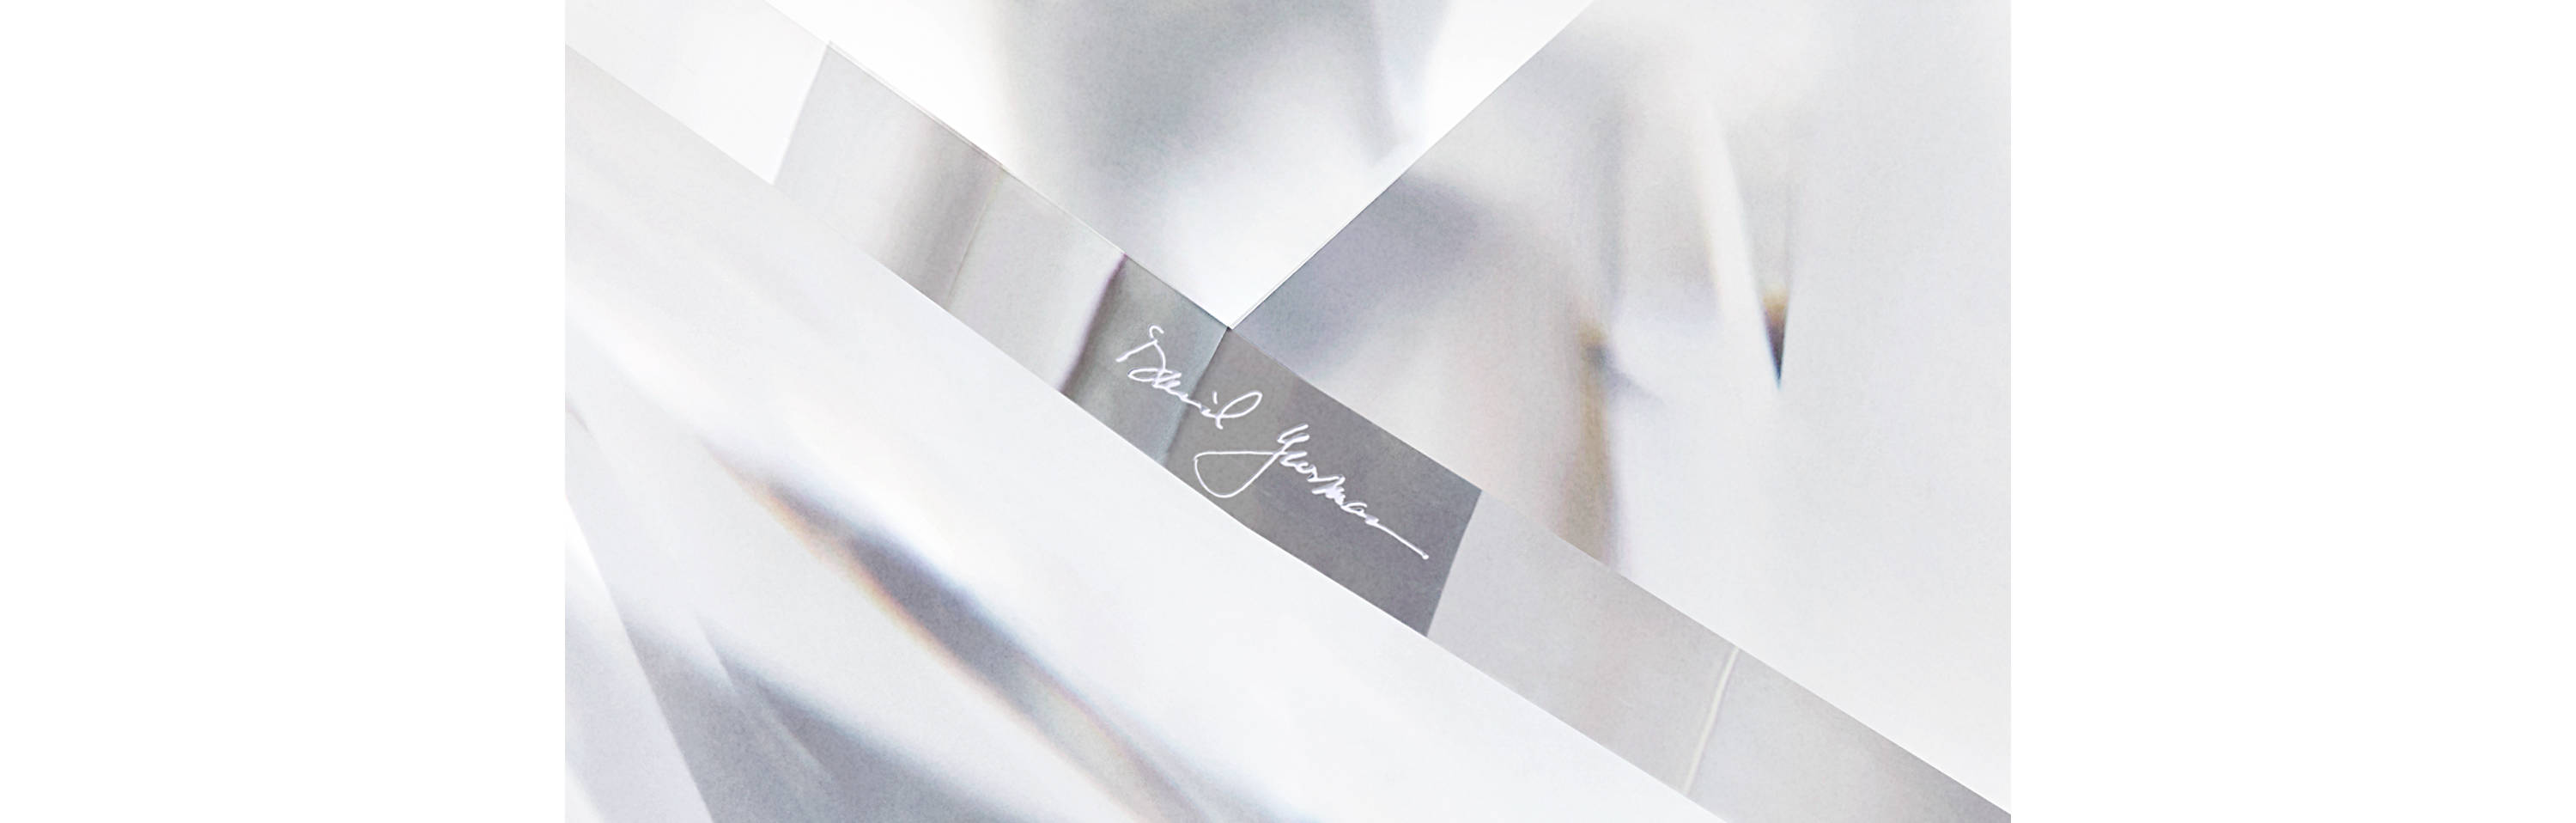 A close-up photo of a DY Signature Cut diamond showing the laser-engraved David Yurman signature at the girdle.